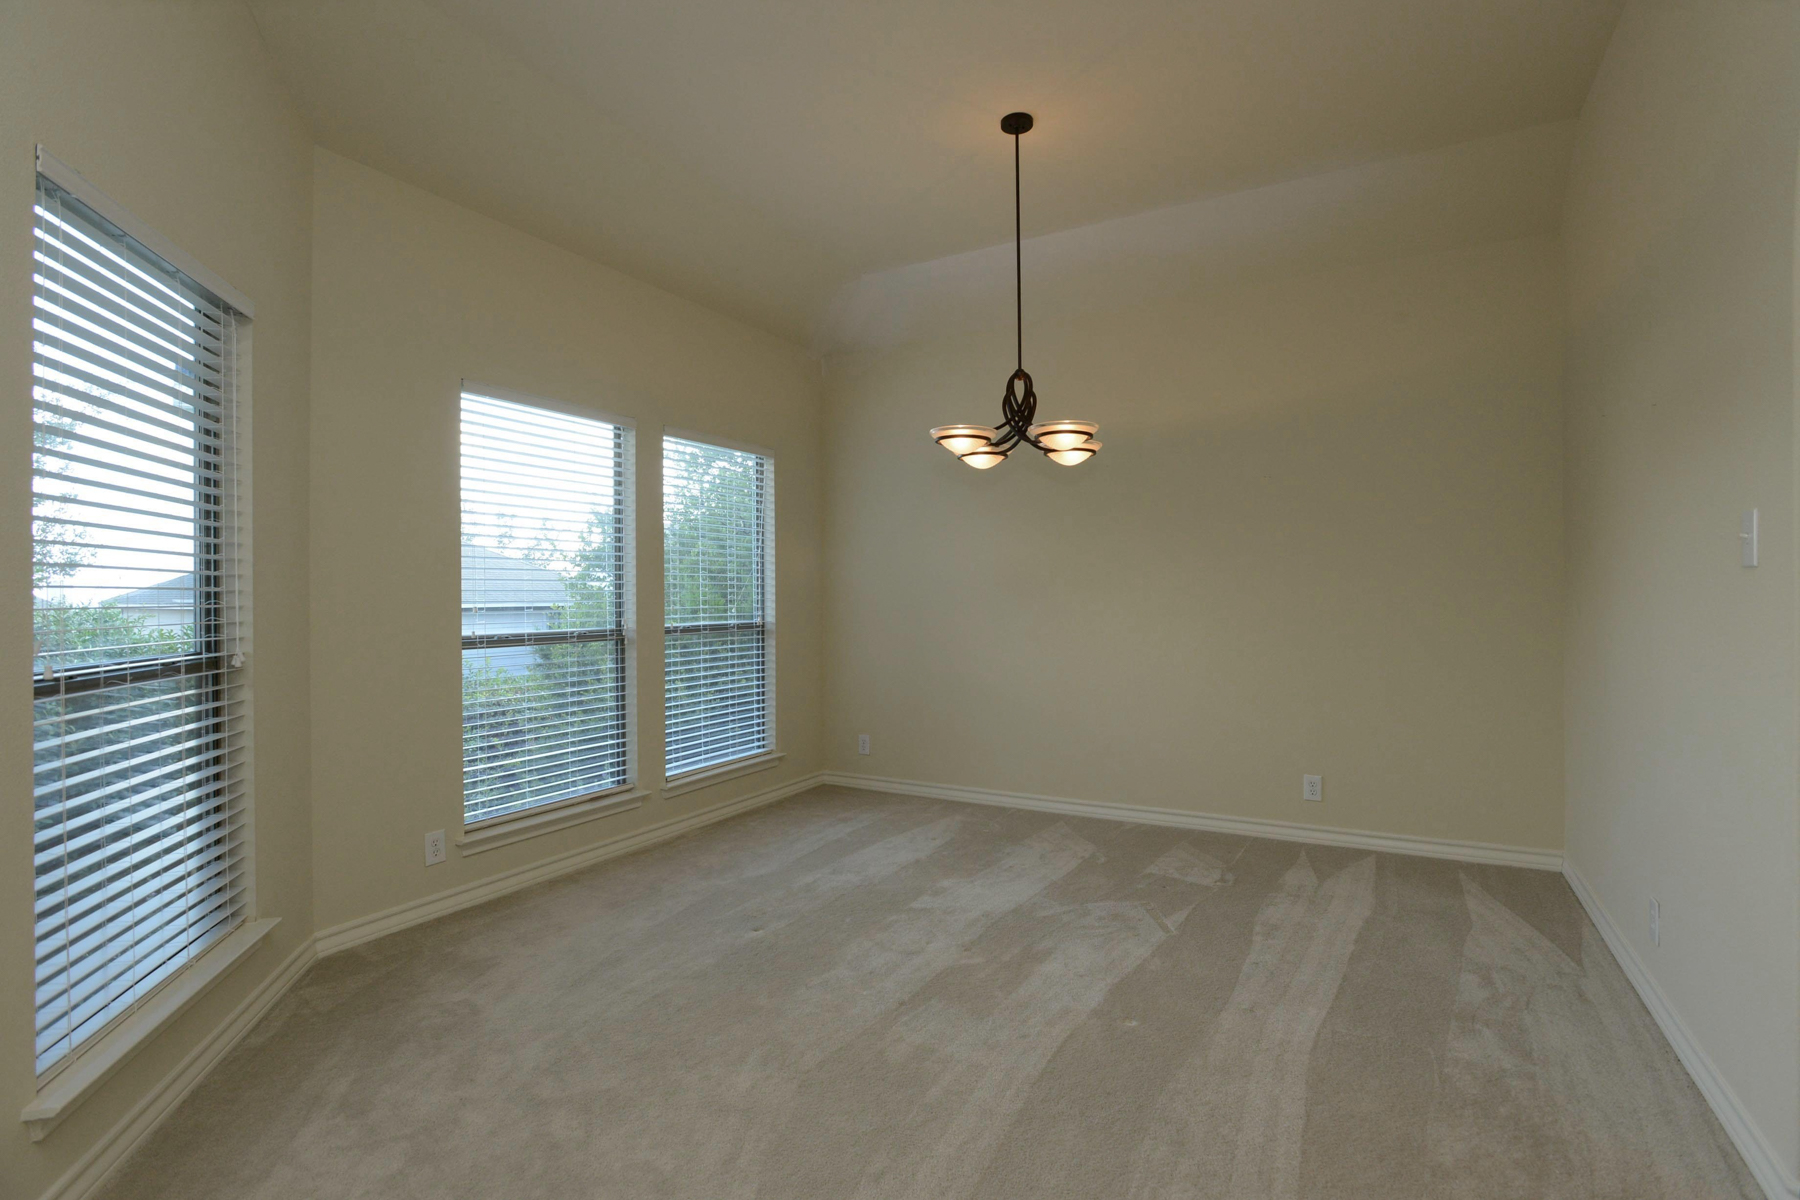 Additional photo for property listing at Single-Story Rental in Heart of Sonterra 538 Bosque Vista San Antonio, Texas 78258 United States